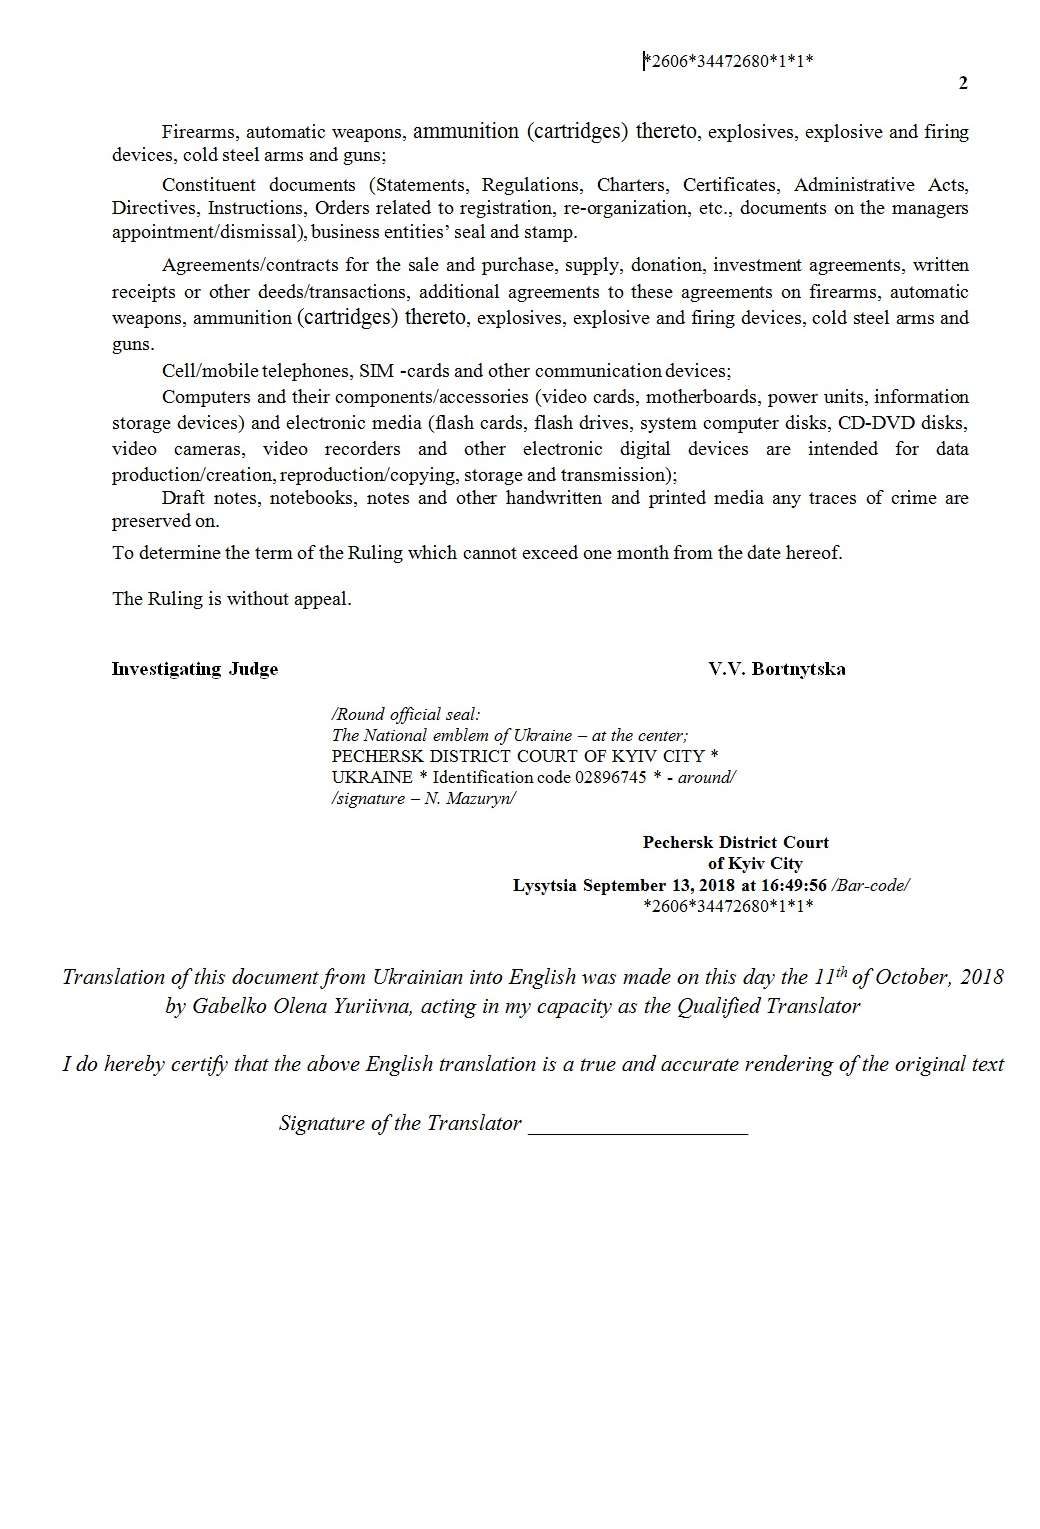 The decision of the Pechersk District Court (English))